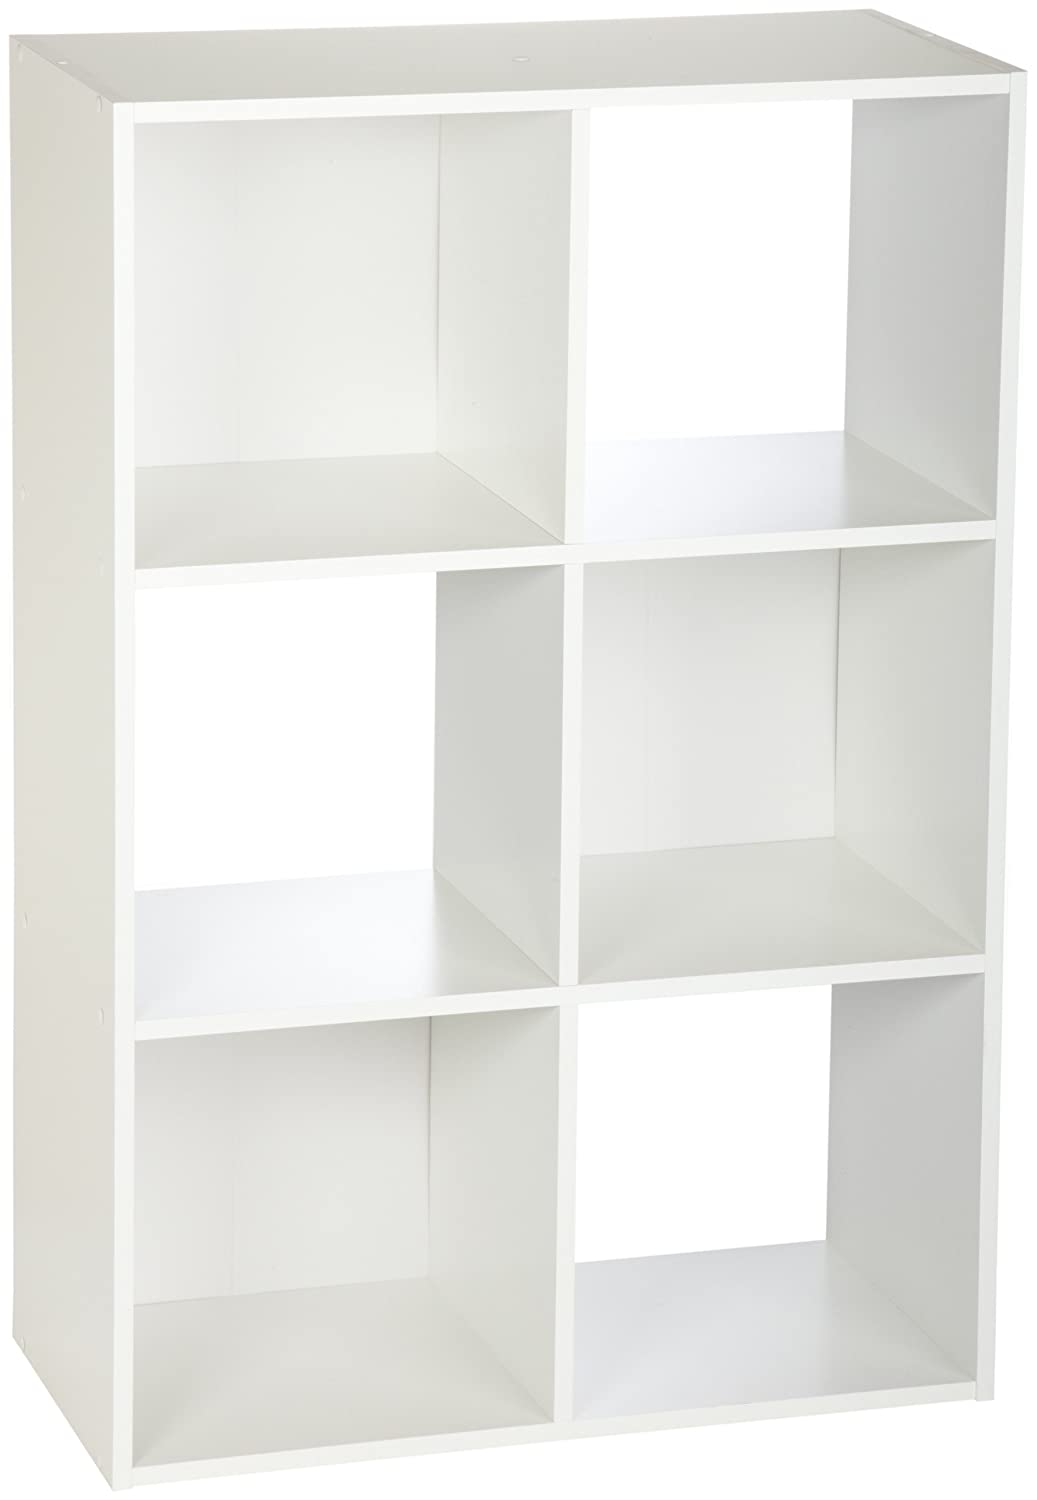 Amazon.com: ClosetMaid (8996) Cubeicals Organizer, 6 Cube   White: Home U0026  Kitchen